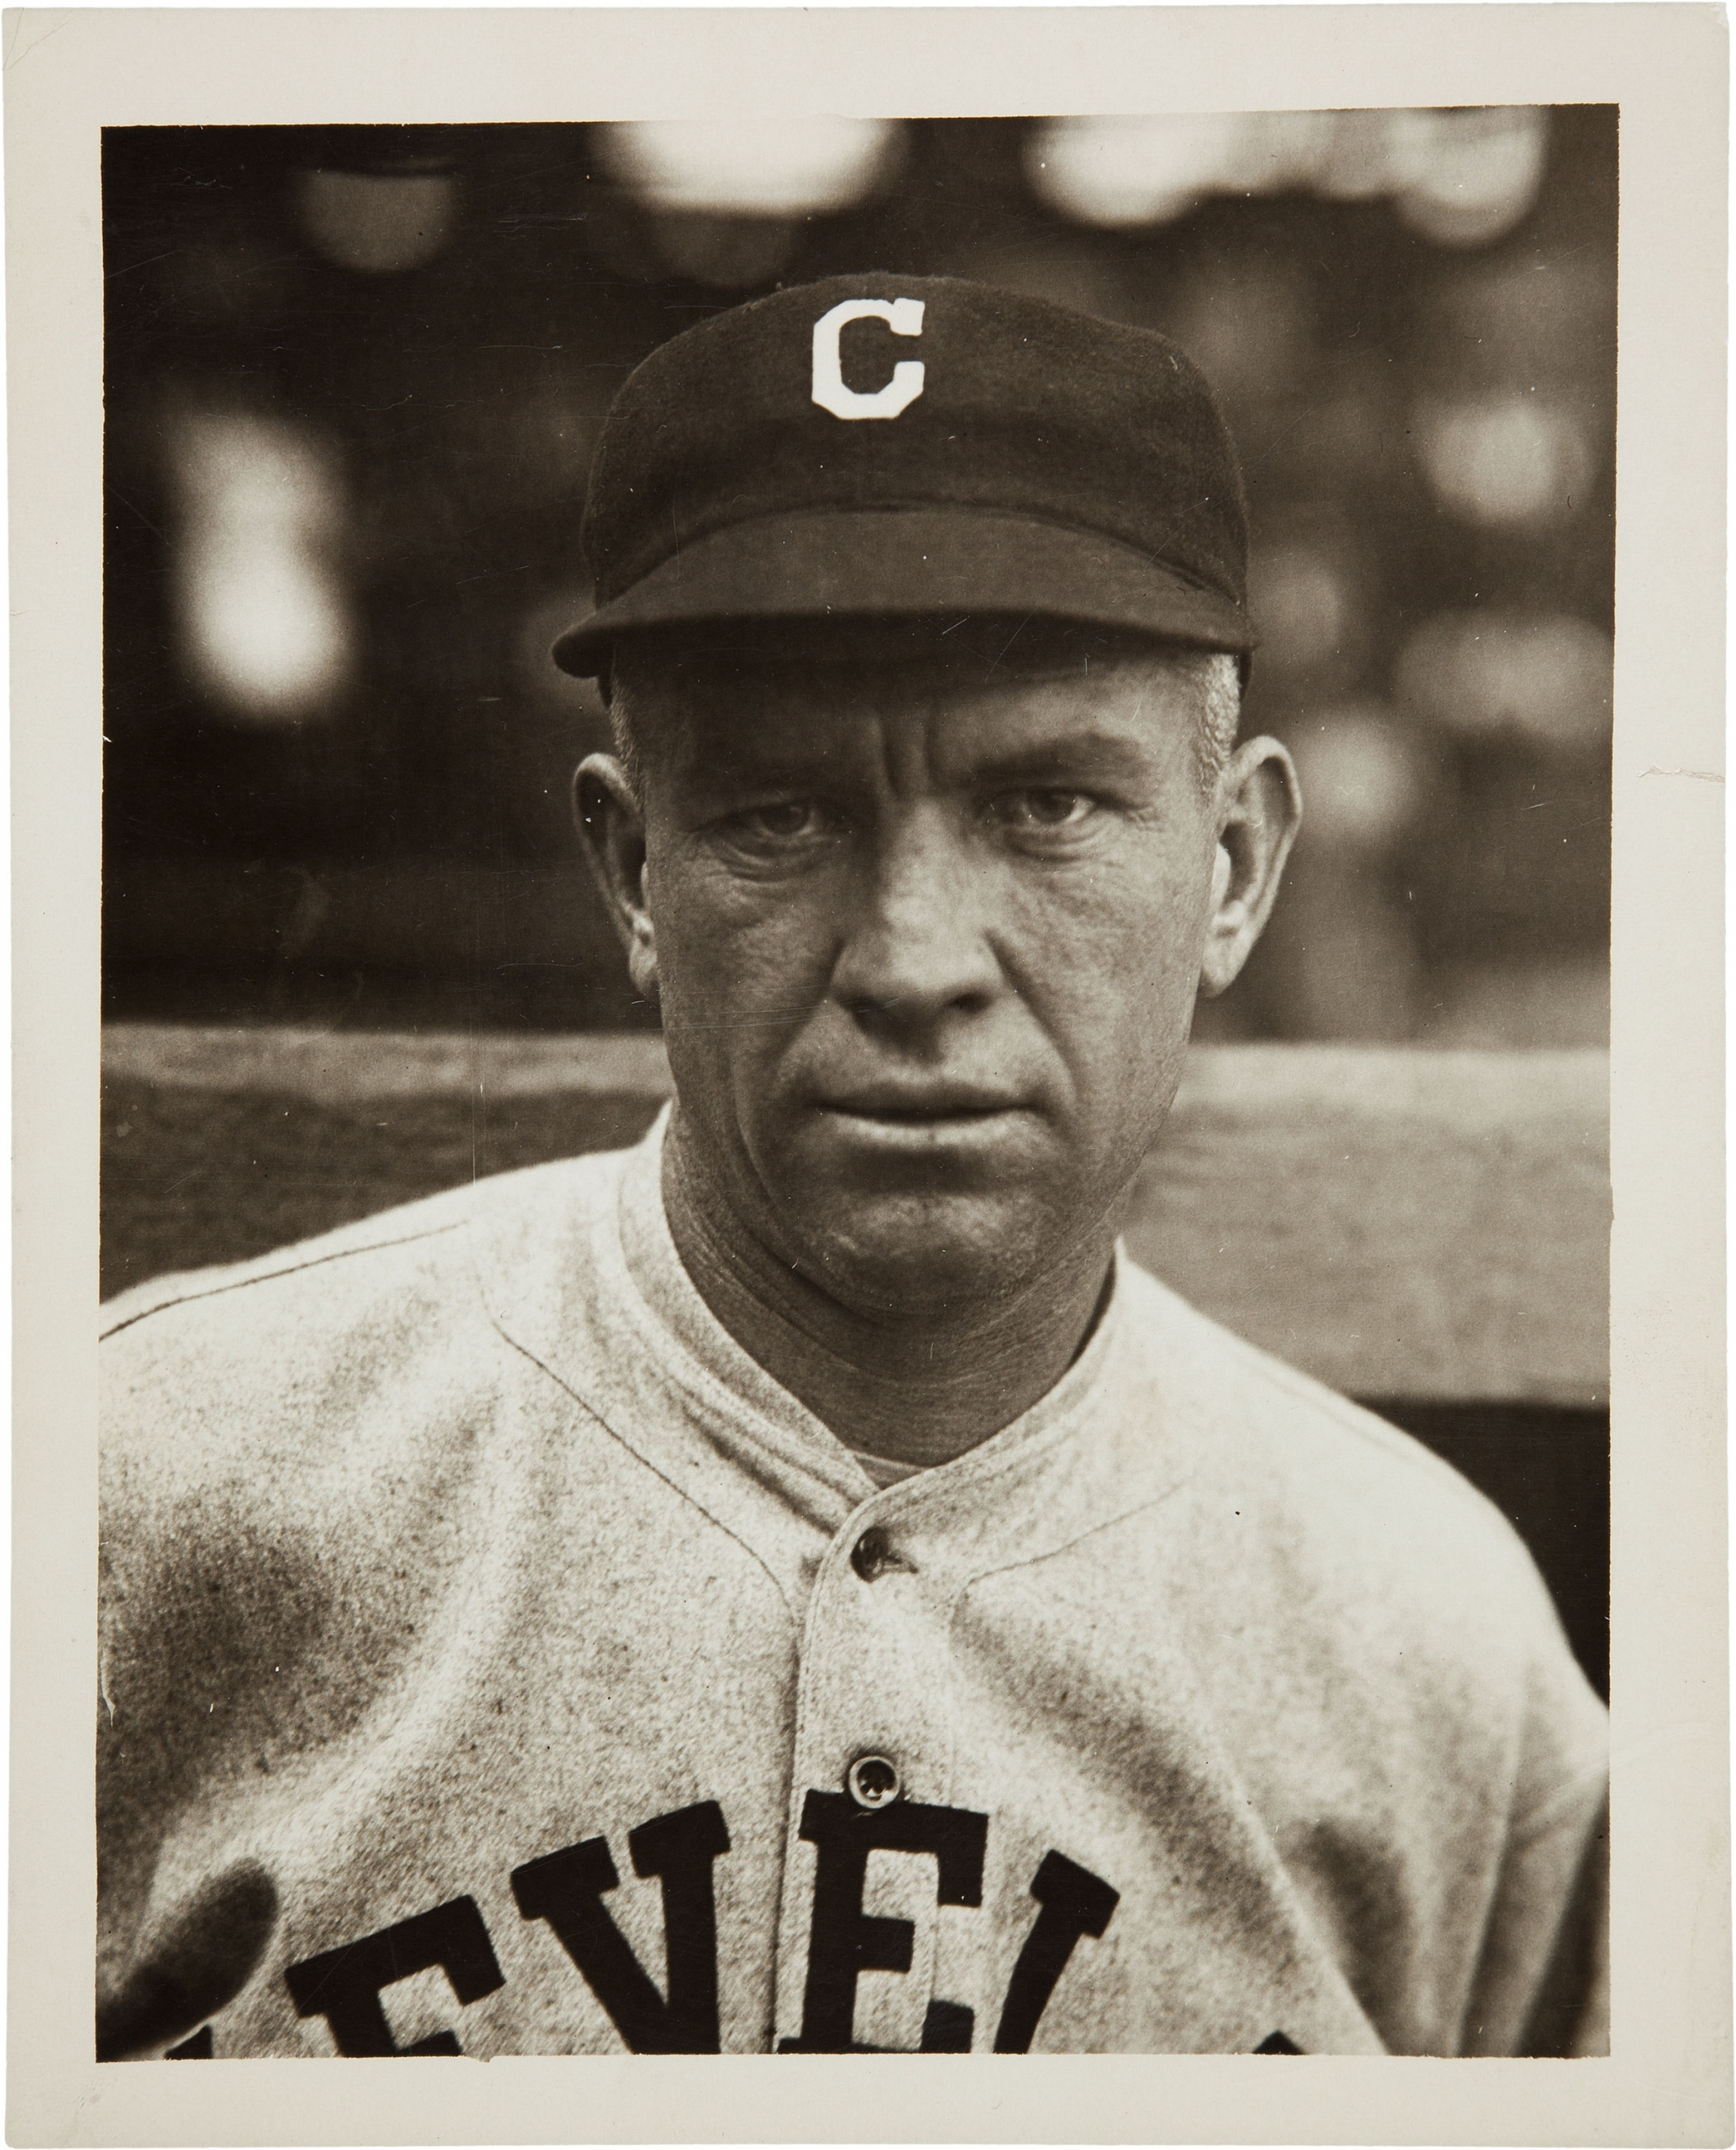 Tris Speaker with the Cleveland Indians (NATIONAL BASEBALL HALL OF FAME LIBRARY)